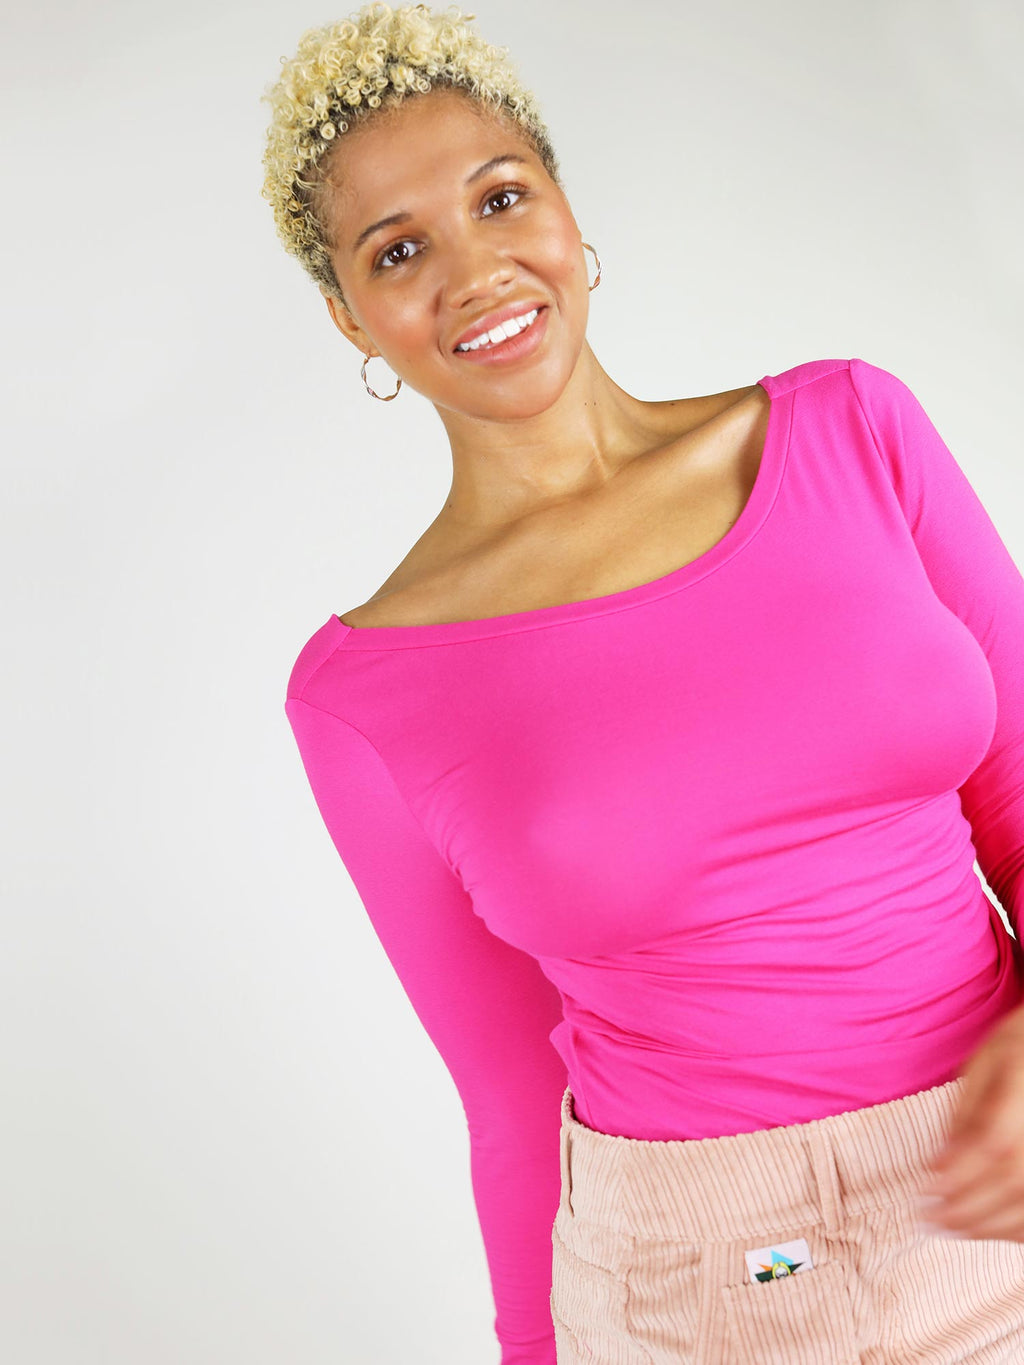 The candy pink twisted blouse is a fitted top with long sleeves and boat neck. It has body con silhouette and can be tucked in.